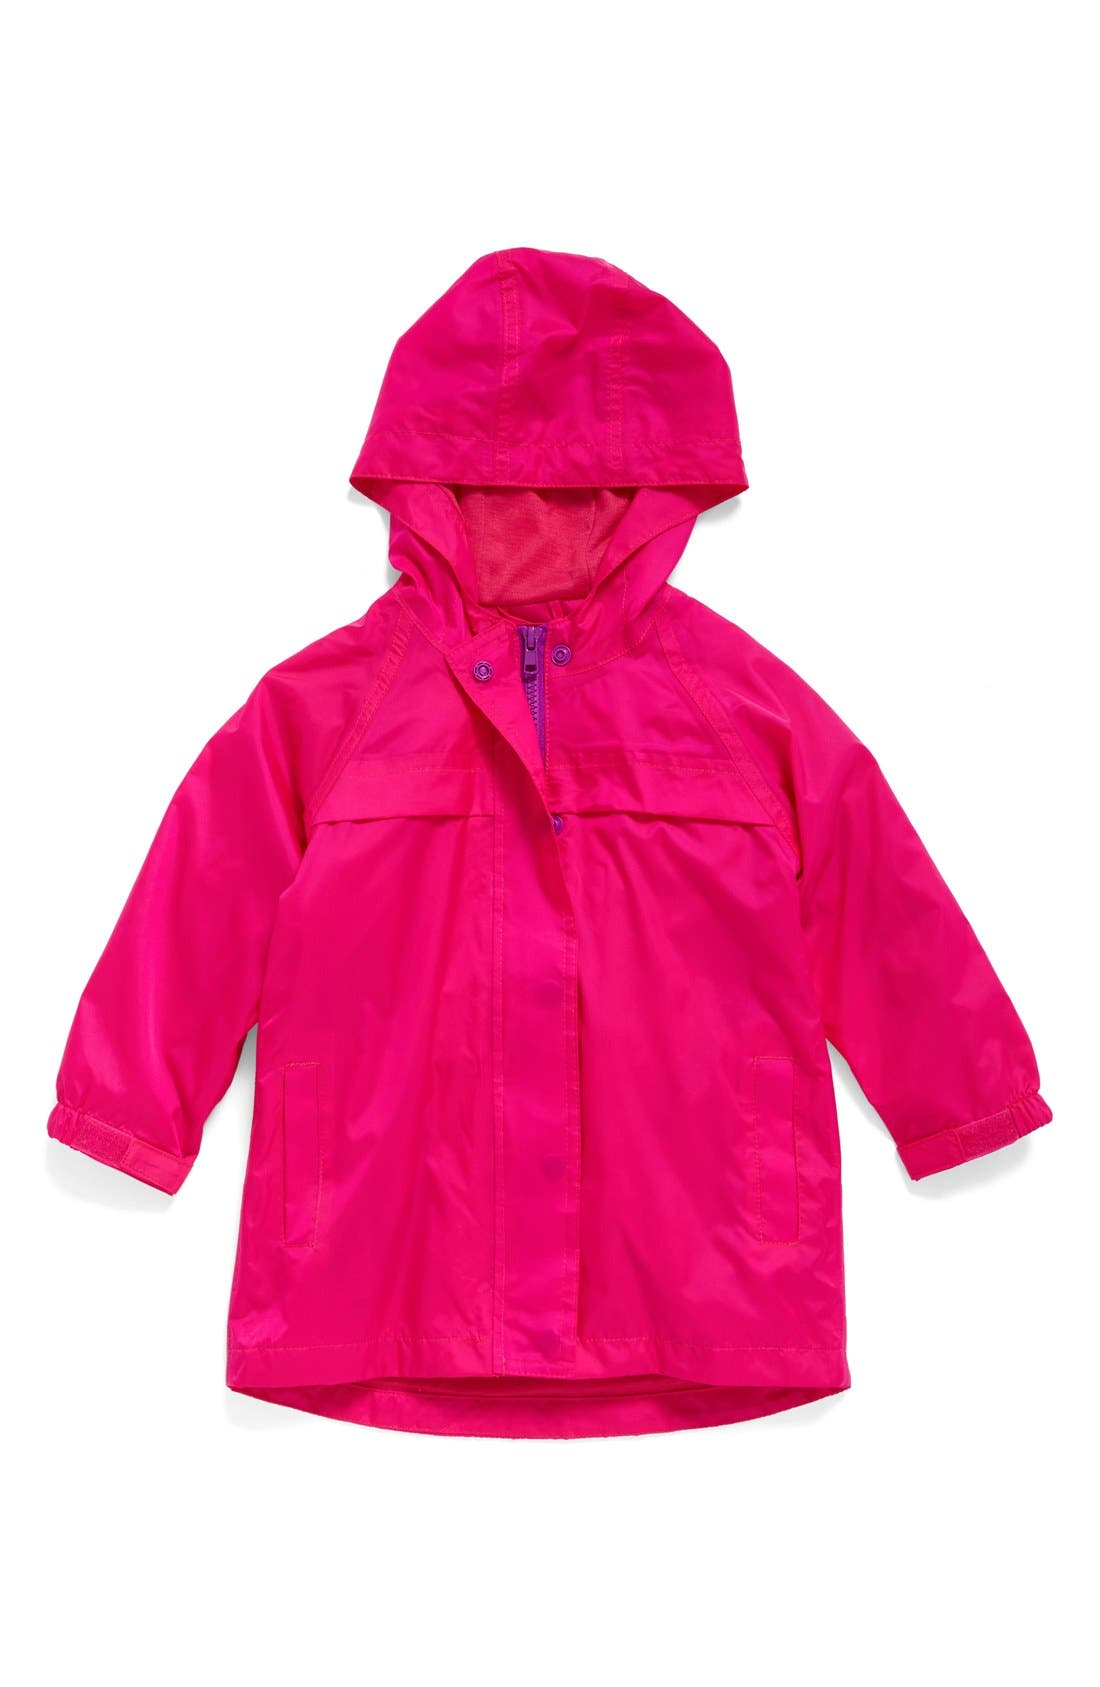 Main Image - Western Chief Hooded Raincoat (Toddler Girls & Little Girls)